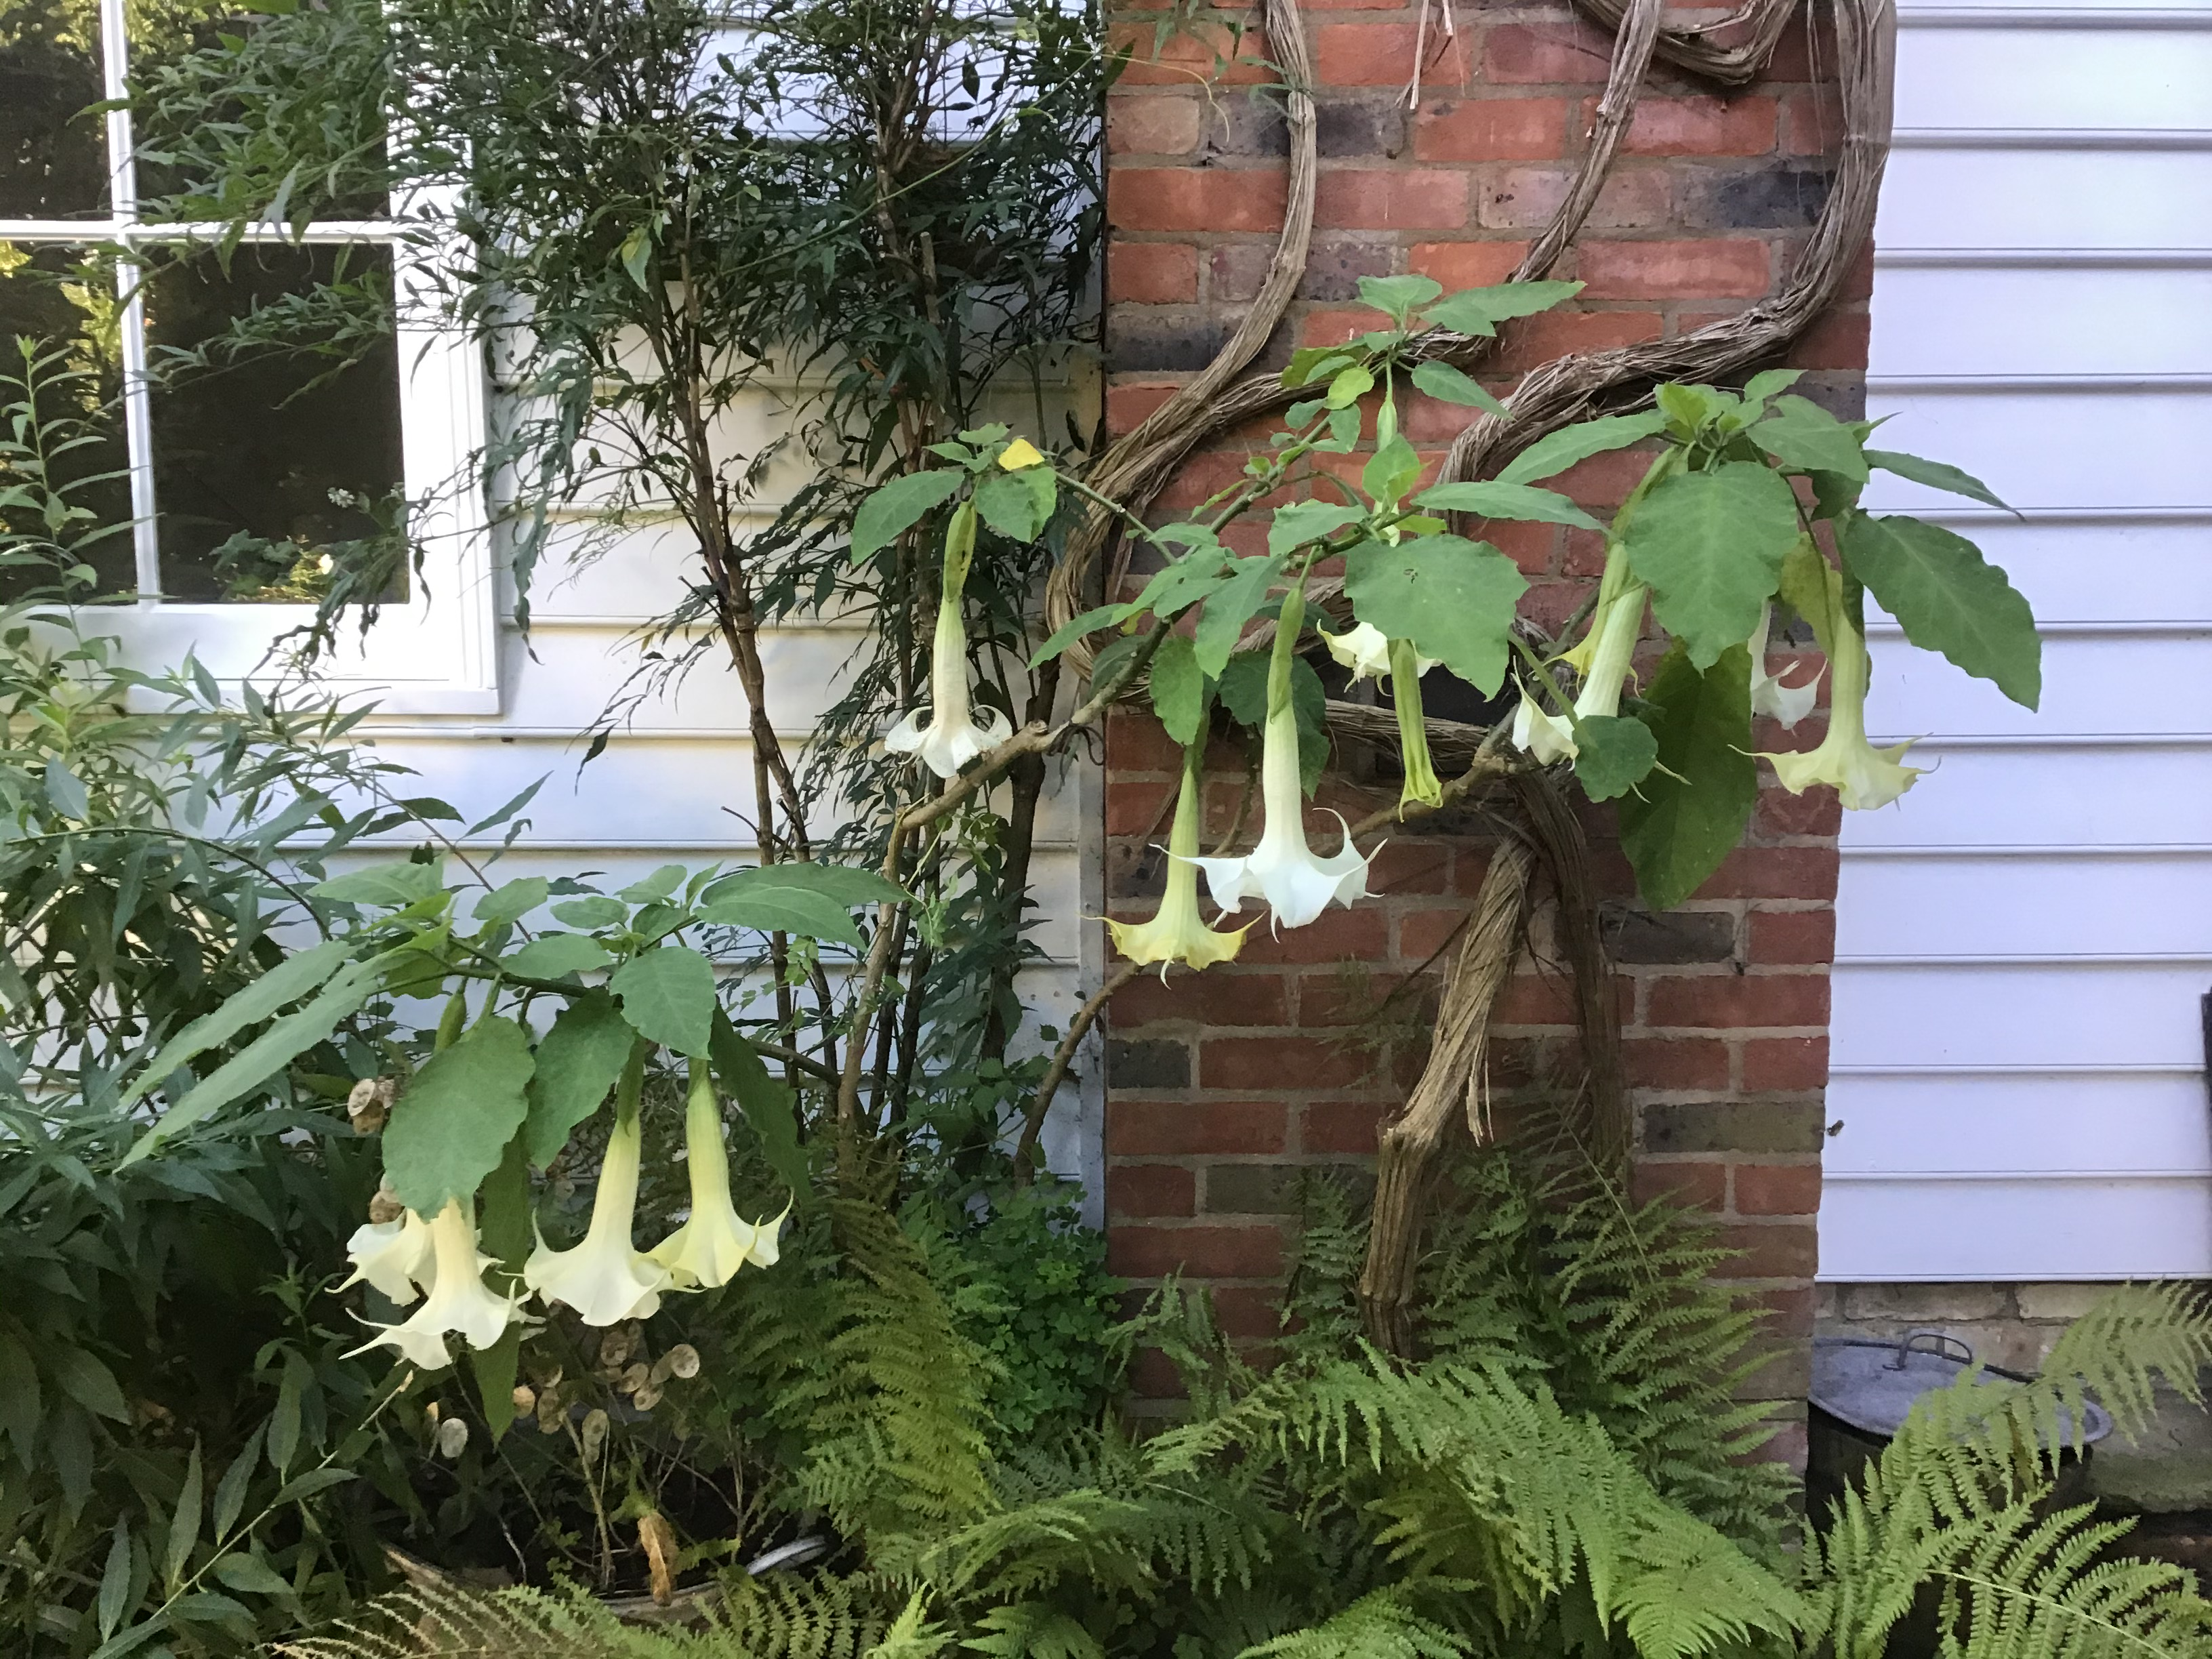 9 October 2020 Brugmansia arborea 'Knightii', banished from the conservatory when it got spider mite but loving life next to the Aga chimney! (Photo Judy Rossiter)